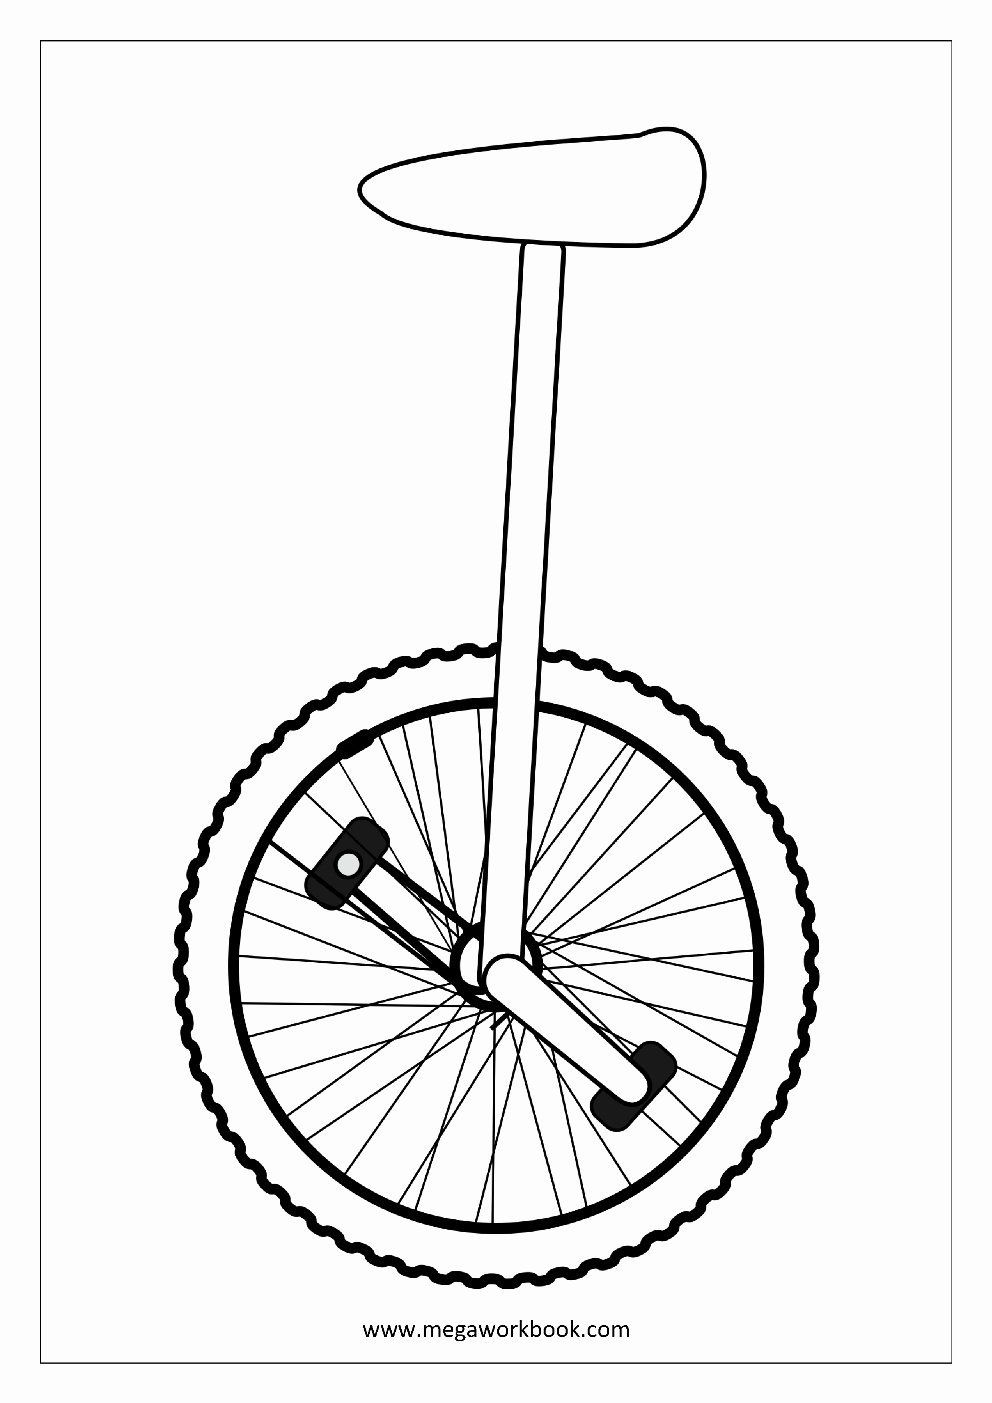 Coloring Sheet Free Printable Unique Unicycle Coloring Pages To Print Coloring For Kid In 2020 Coloring Sheets Free Printable Coloring Sheets Printable Coloring Sheets